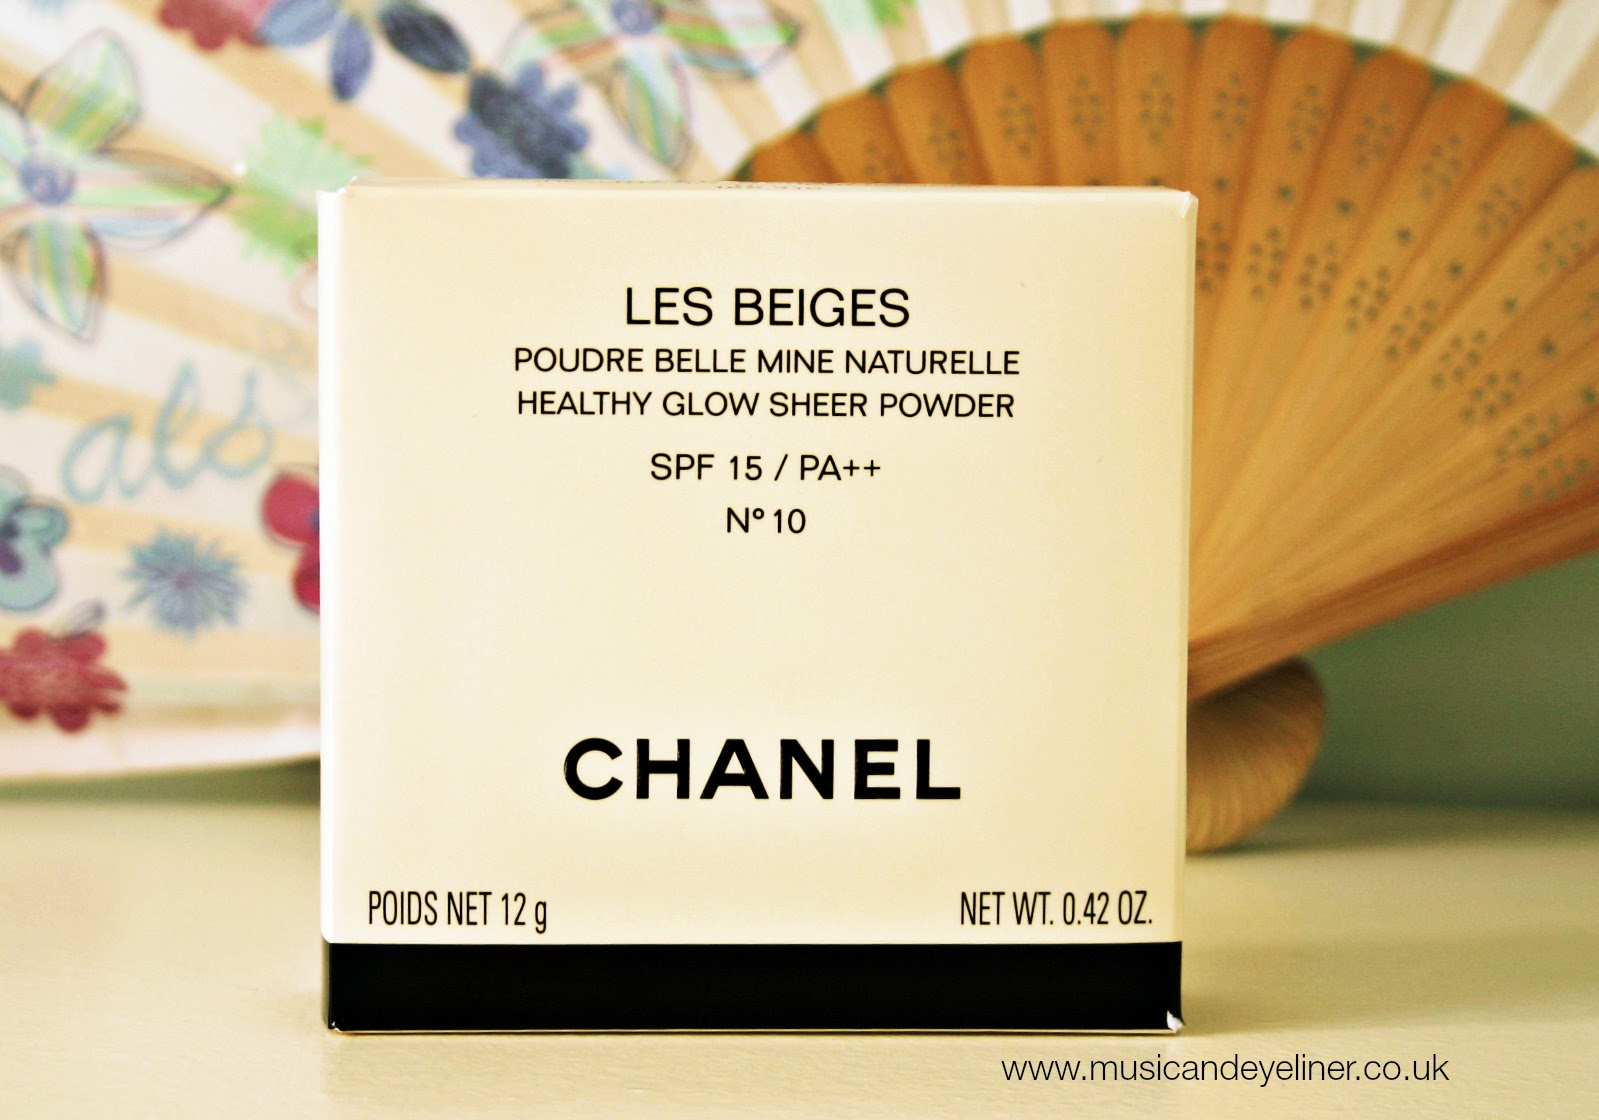 www.musicandeyeliner.co.uk photo of Chanel Les Beiges packaging